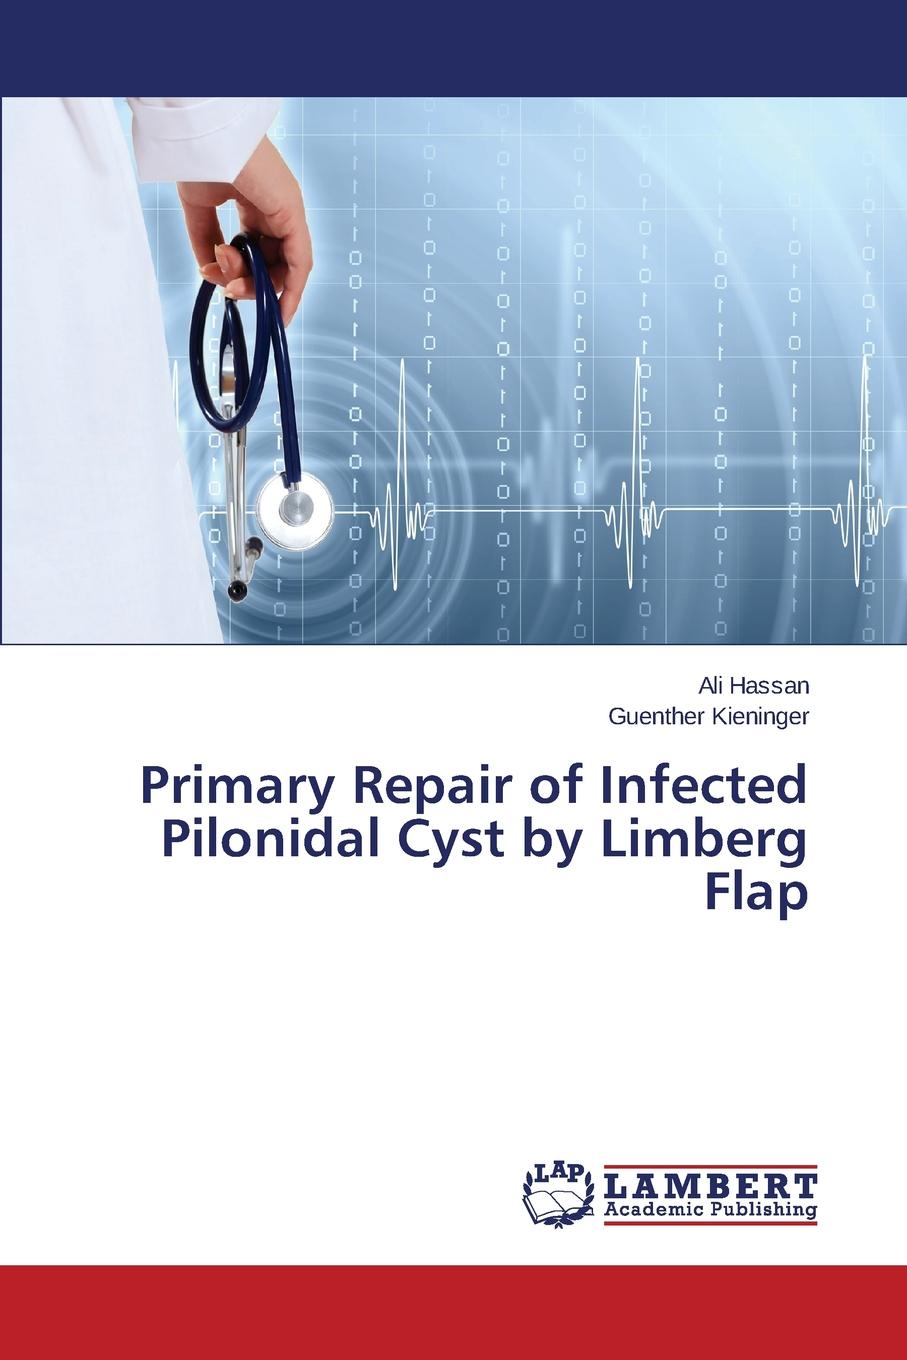 Hassan Ali, Kieninger Guenther Primary Repair of Infected Pilonidal Cyst by Limberg Flap storage of mango treated with calcium chloride